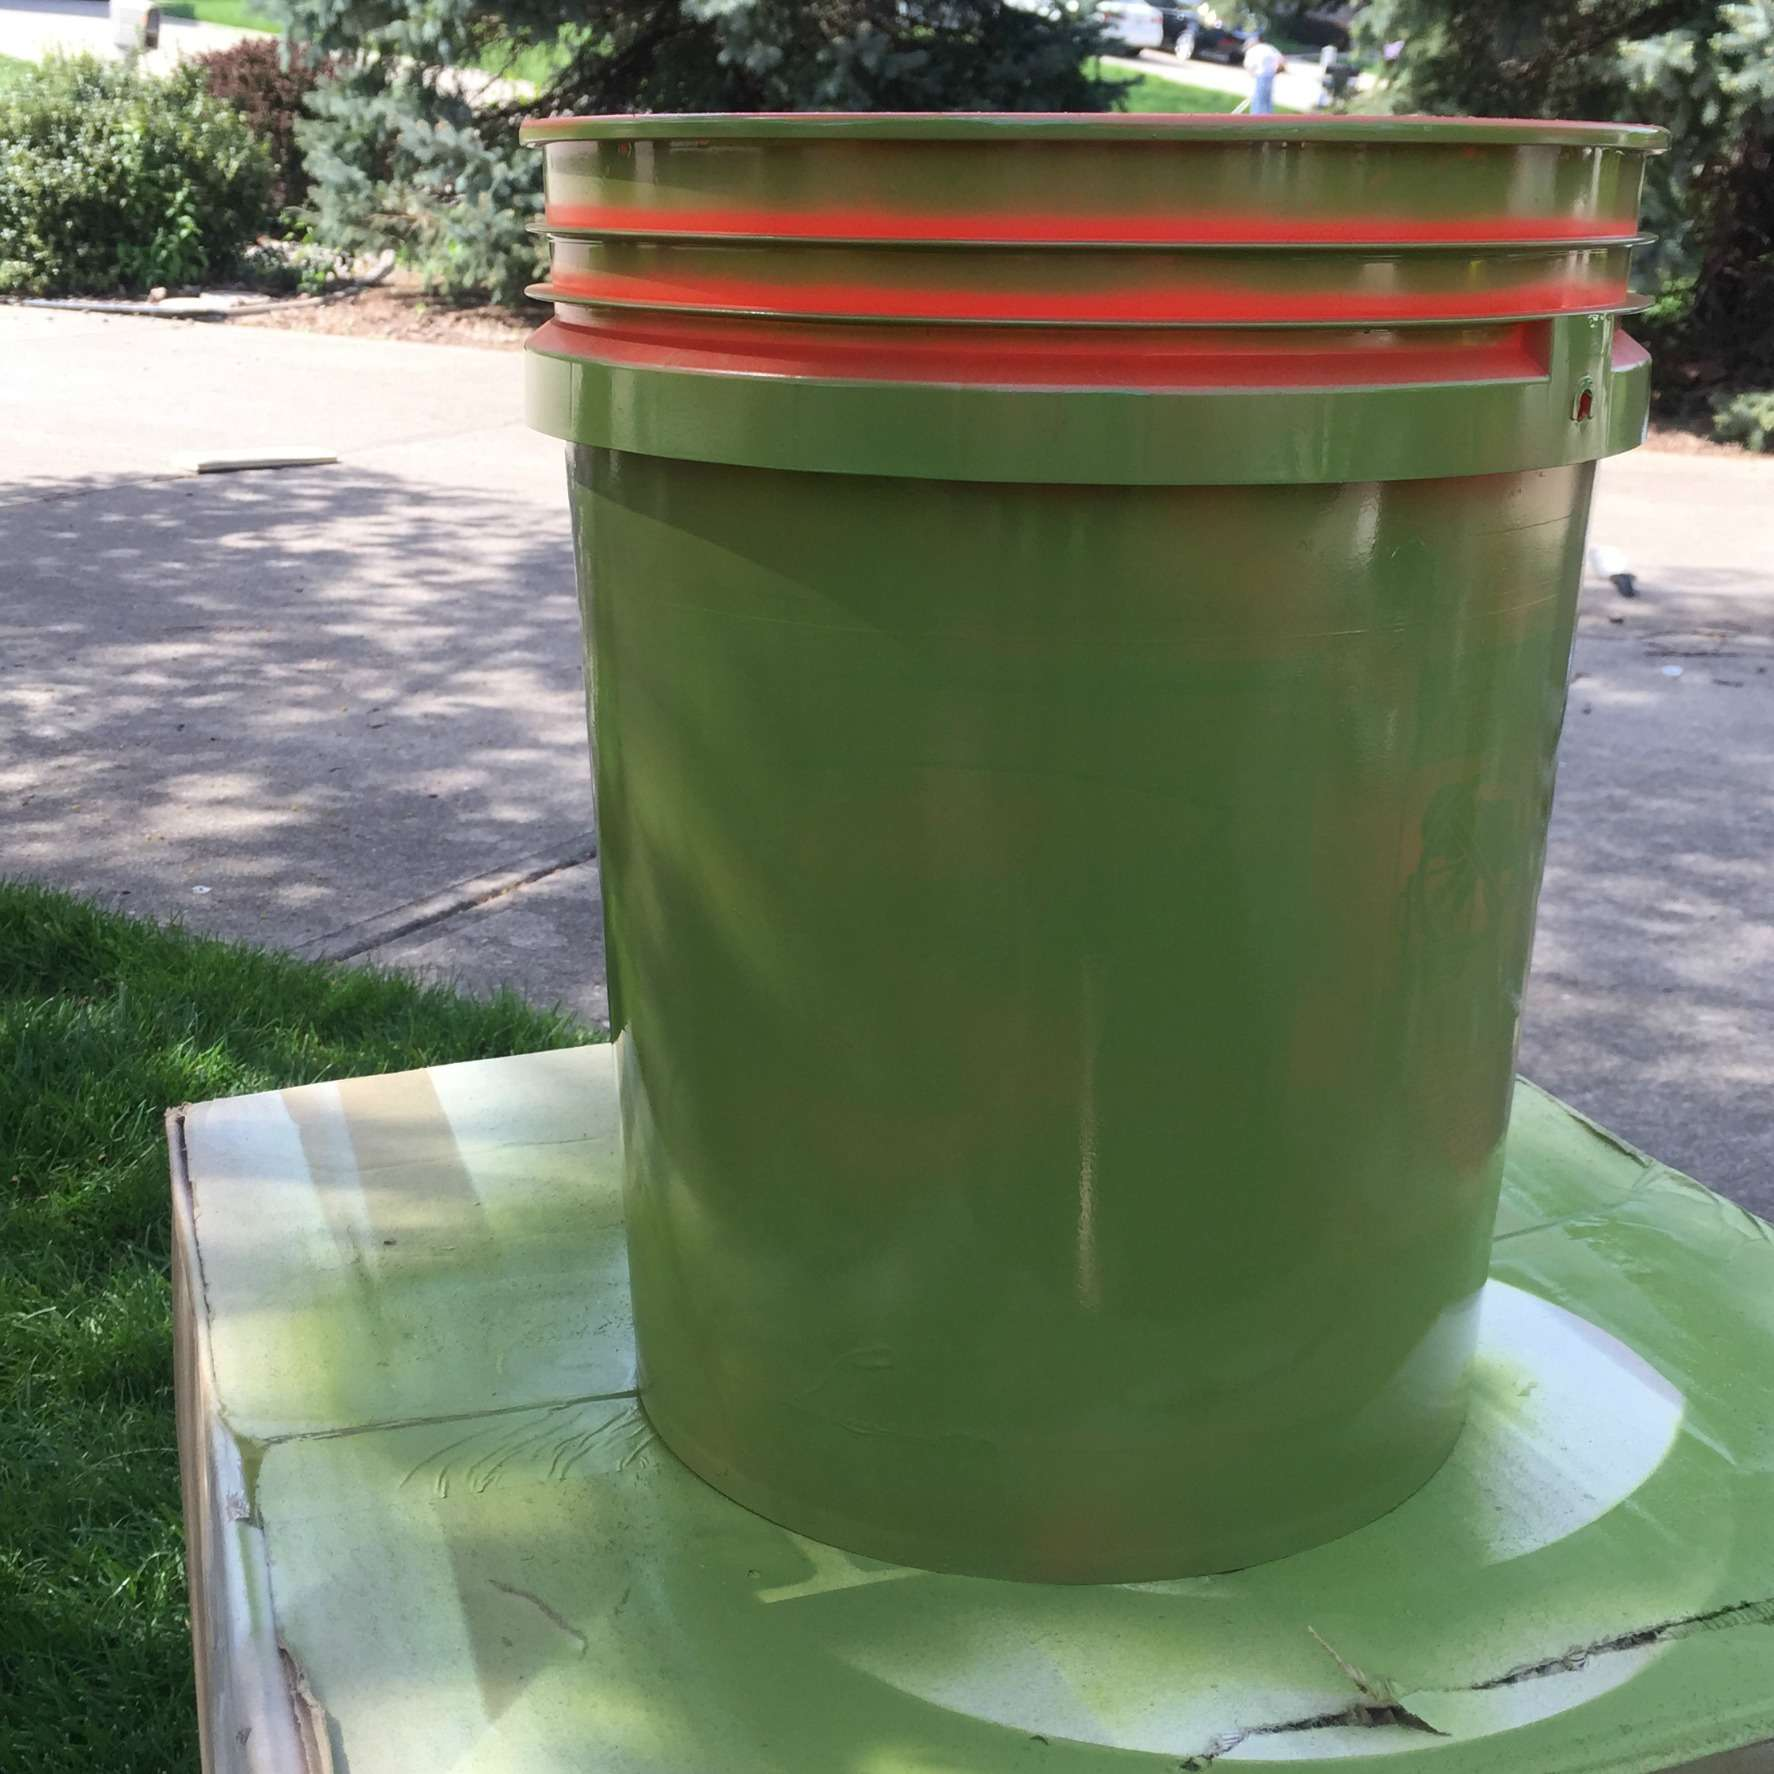 Diy tomato planters from 5 gallon buckets busy bliss for 5 gallon bucket of paint price